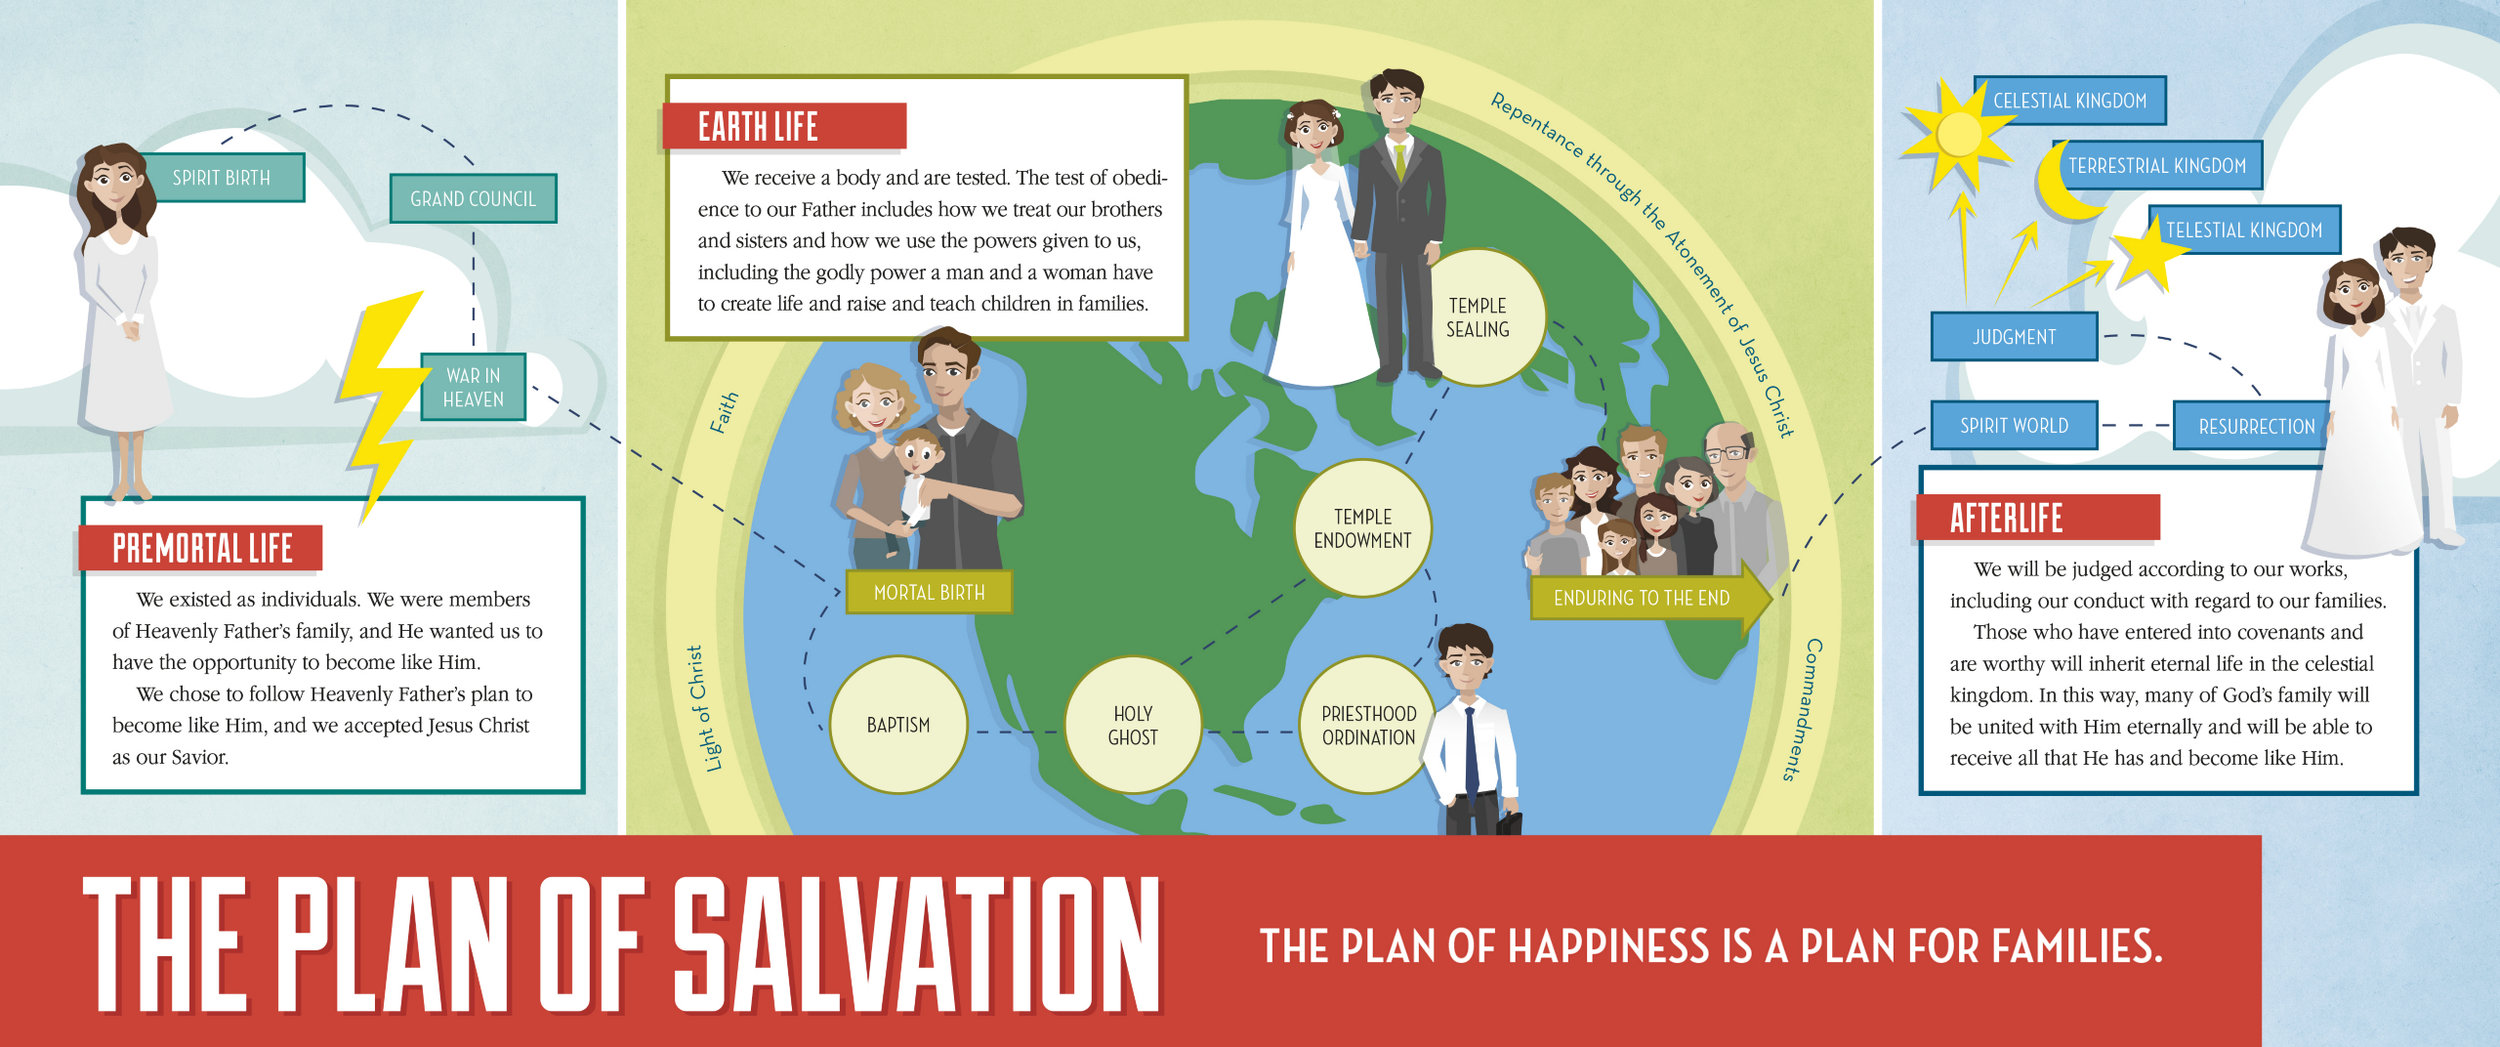 The Plan of Salvation is for families (from LDS.org)